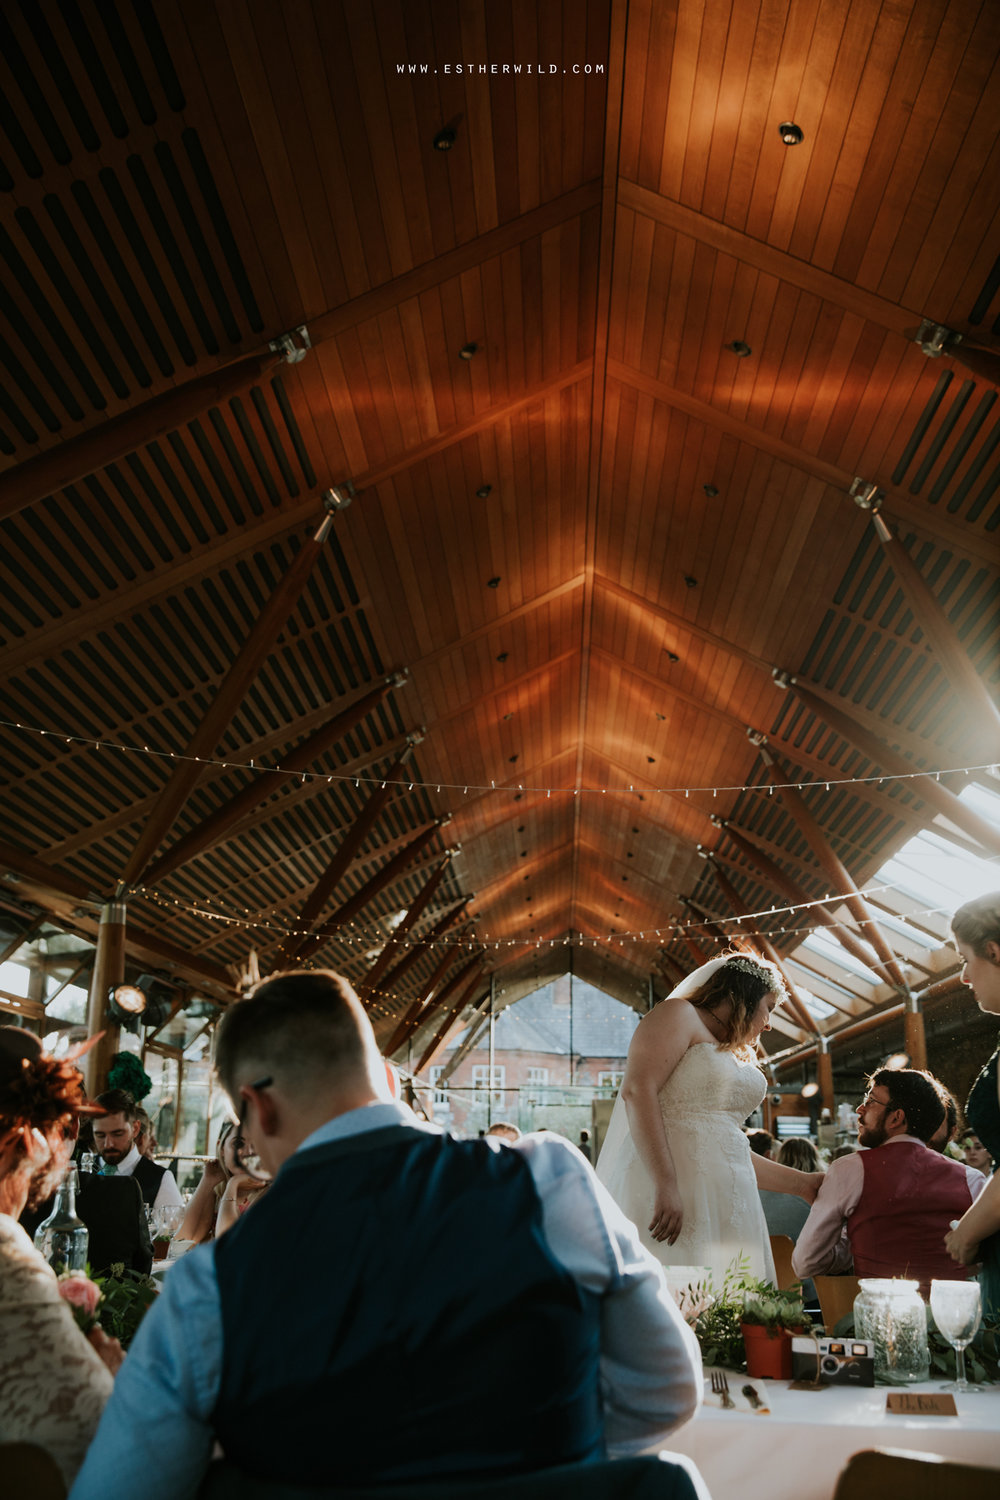 Norwich_Castle_Arcade_Grosvenor_Chip_Birdcage_Cathedral_Cloisters_Refectory_Wedding_Photography_Esther_Wild_Photographer_Norfolk_Kings_Lynn_3R8A2253.jpg